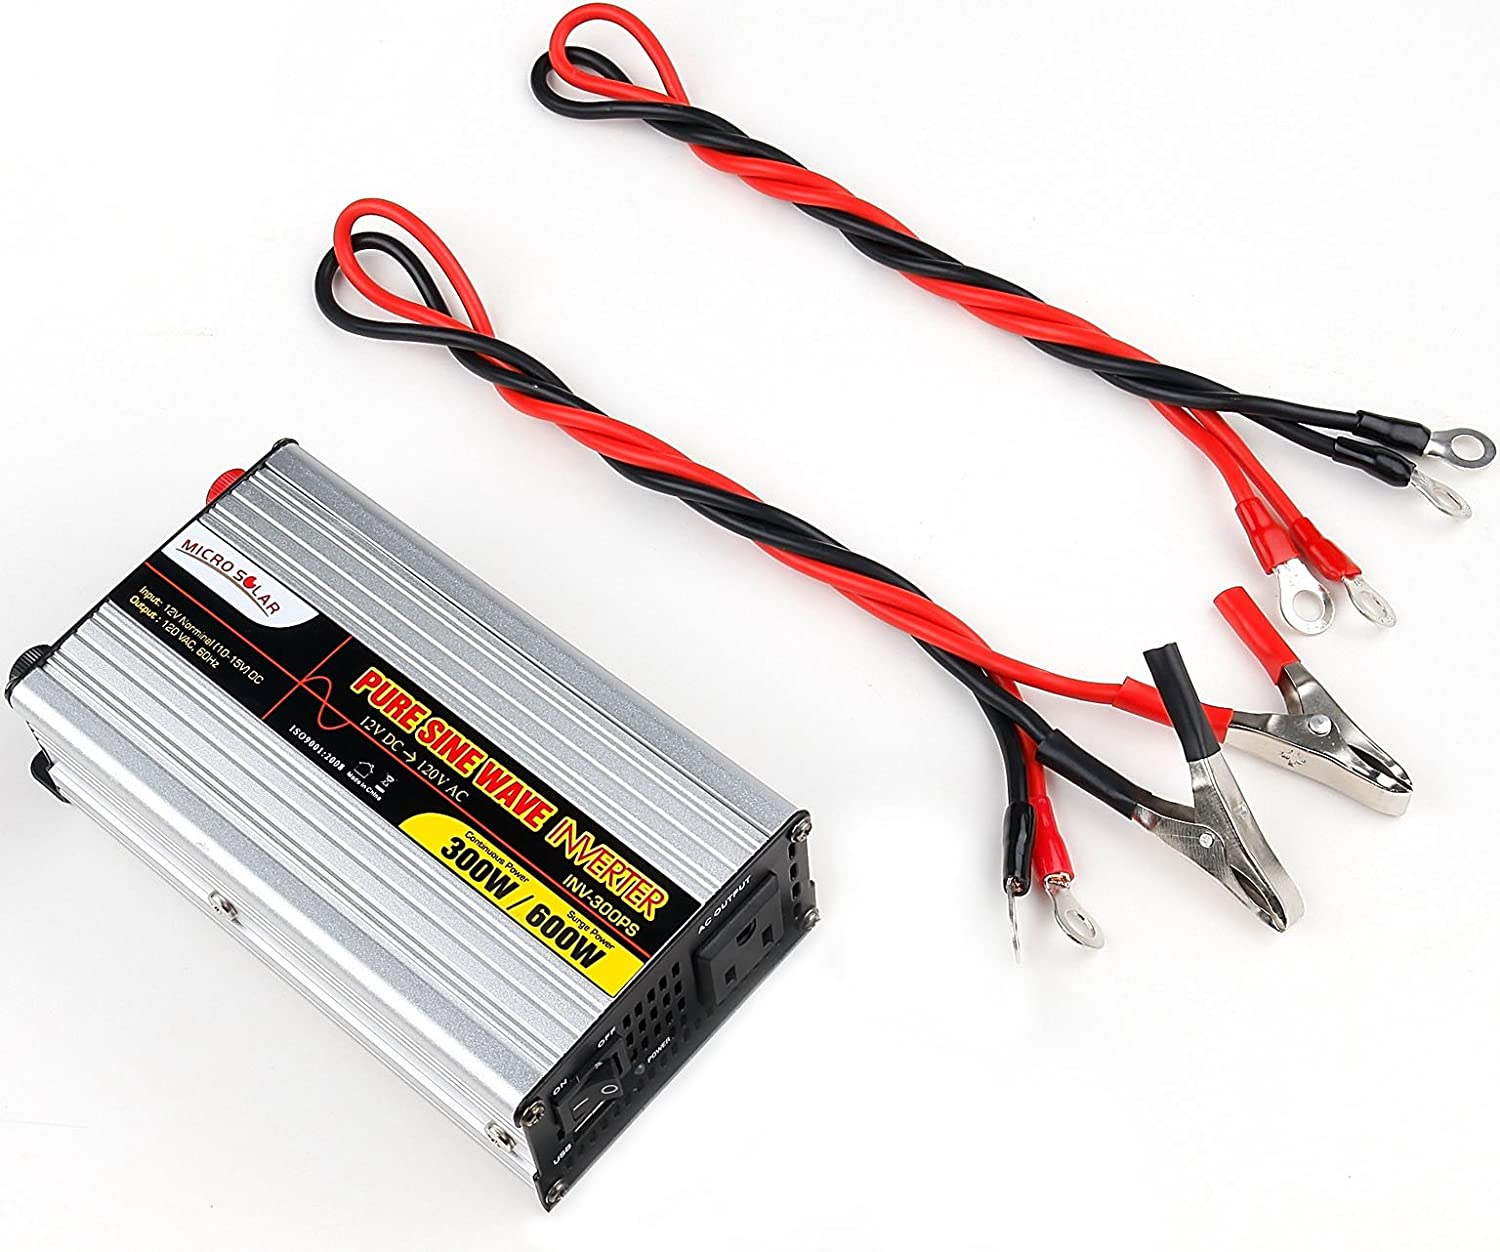 Microsolar 300wpeak 600w Pure Sine Wave Inverter Power Inverters 12v To 230v Wiring Diagram With Two Wires Car Electronics